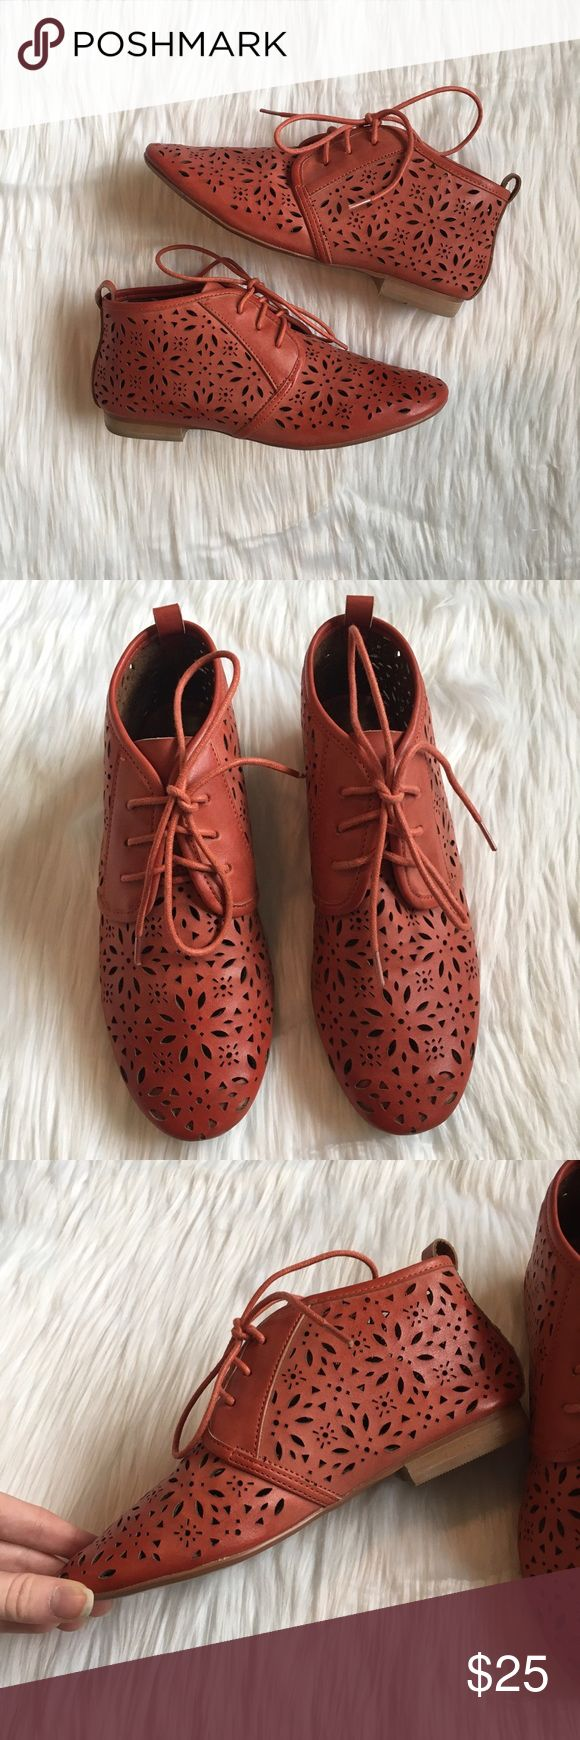 Crown Vintage DSW Coral Laser Cut Oxfords crown vintage coral oxfords. features laser cut material and a 1/2 heel. these cover up more of the foot unlike some oxfords i see. gorgeous color, perfect for spring / summer! one mark on the inner side of one of the shoe. from designer shoe warehouse. size women's 6.5. 10% off bundles of 2 items and 15% off bundles of 3+ items. Crown Vintage Shoes Flats & Loafers